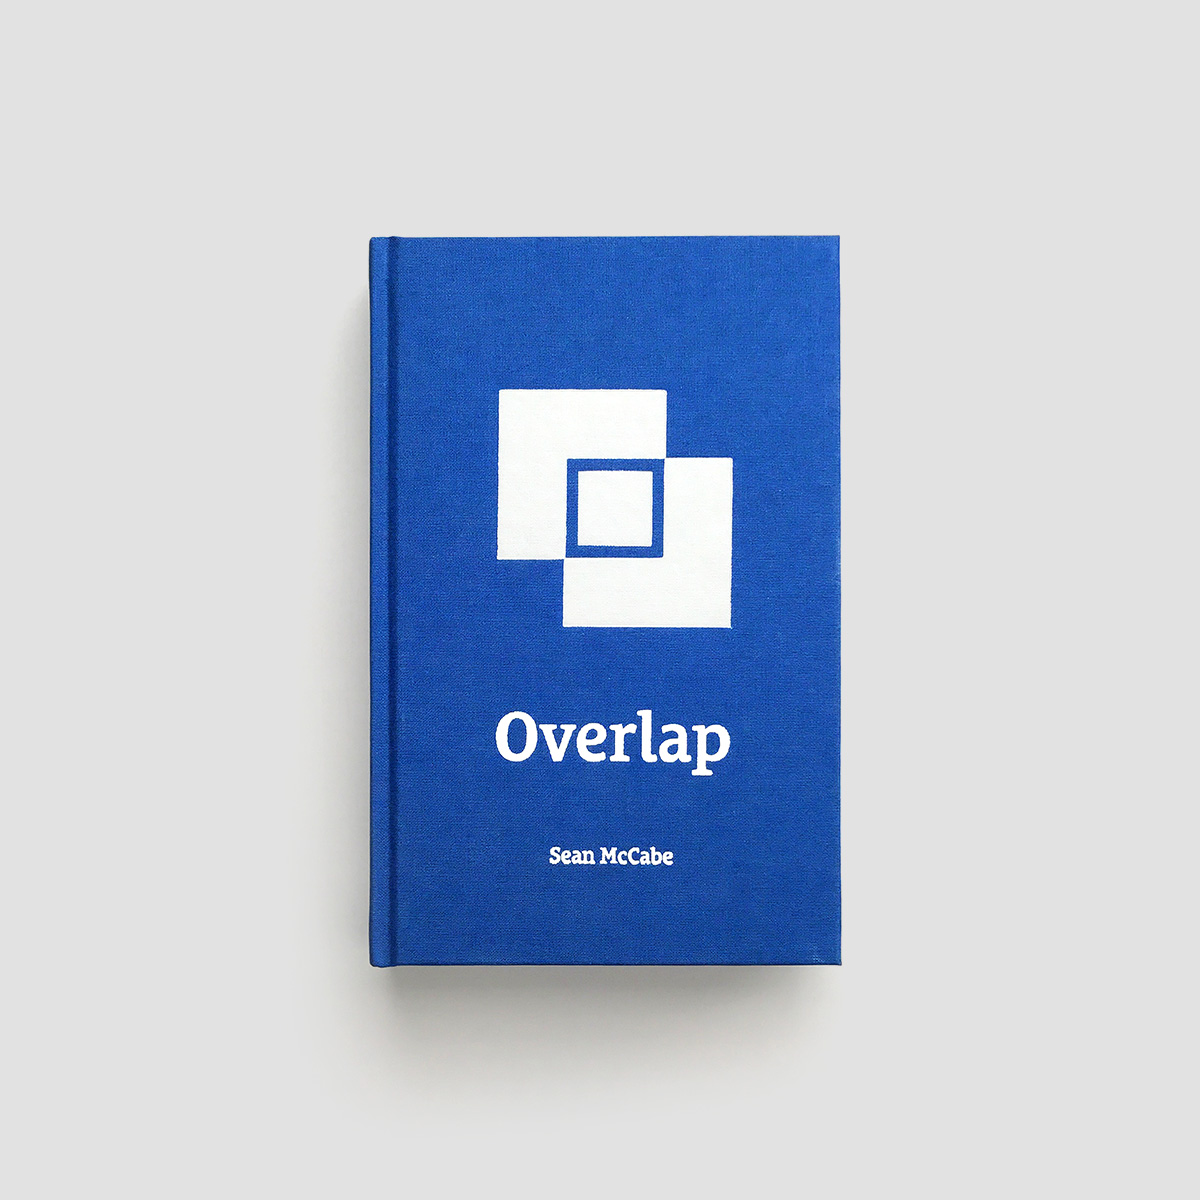 review of Overlap by Sean McCabe